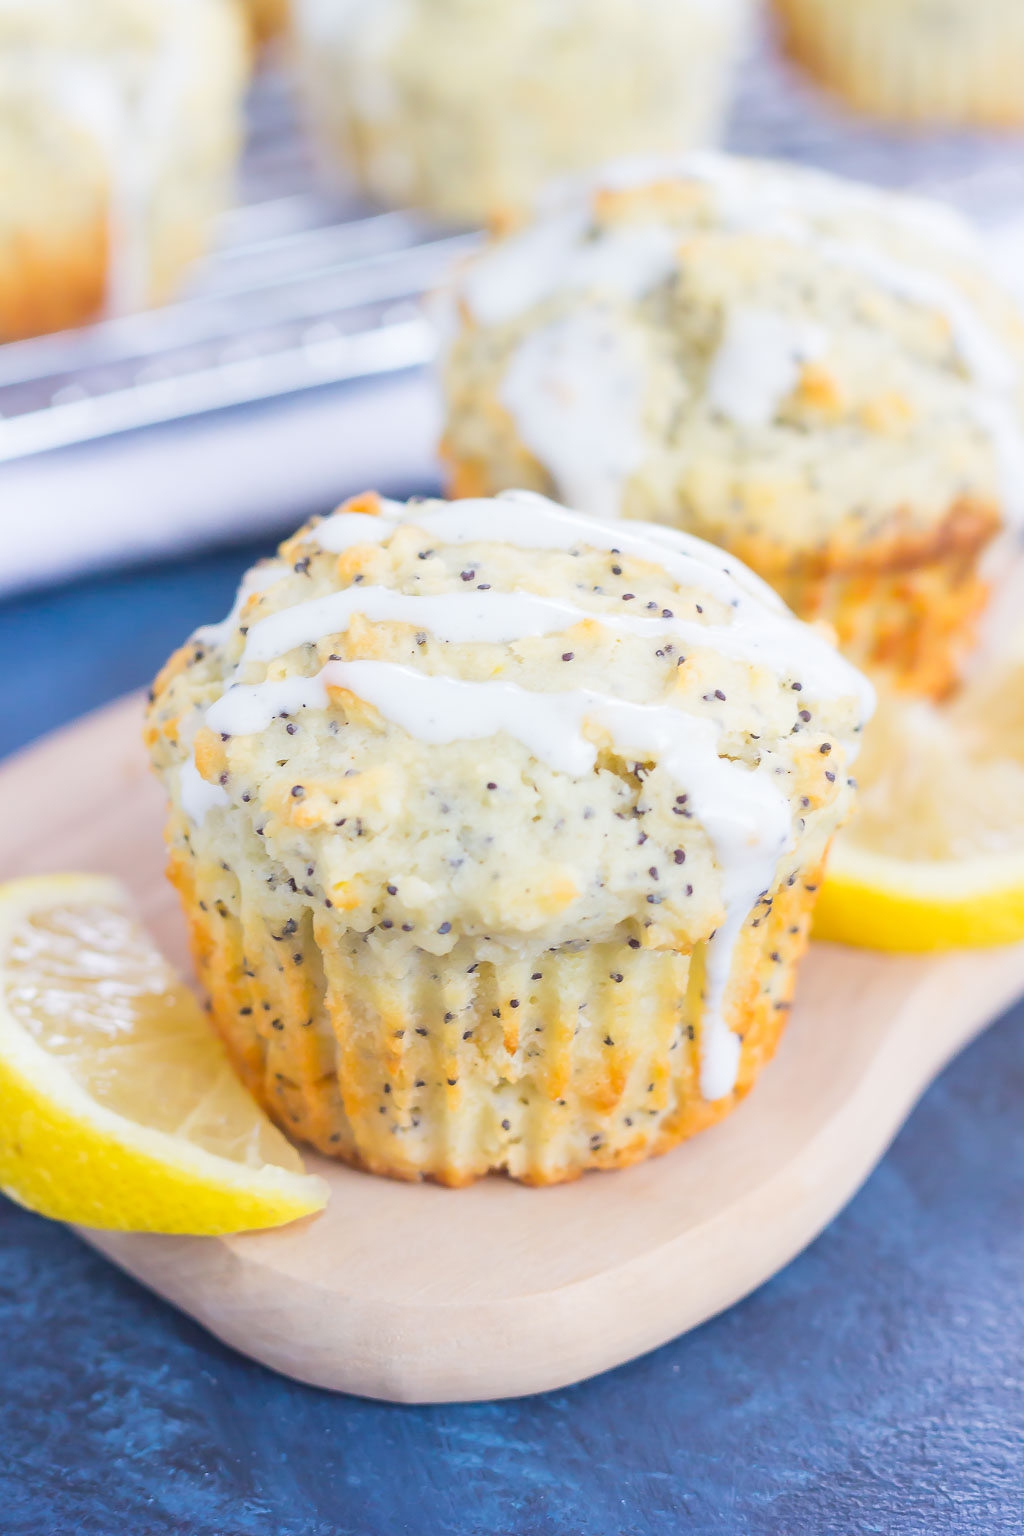 These Lemon Poppy Seed Muffins are soft, fluffy and bursting with flavor. Drizzled with an easy cream cheese glaze, these muffins are perfect for a simple breakfast or dessert!